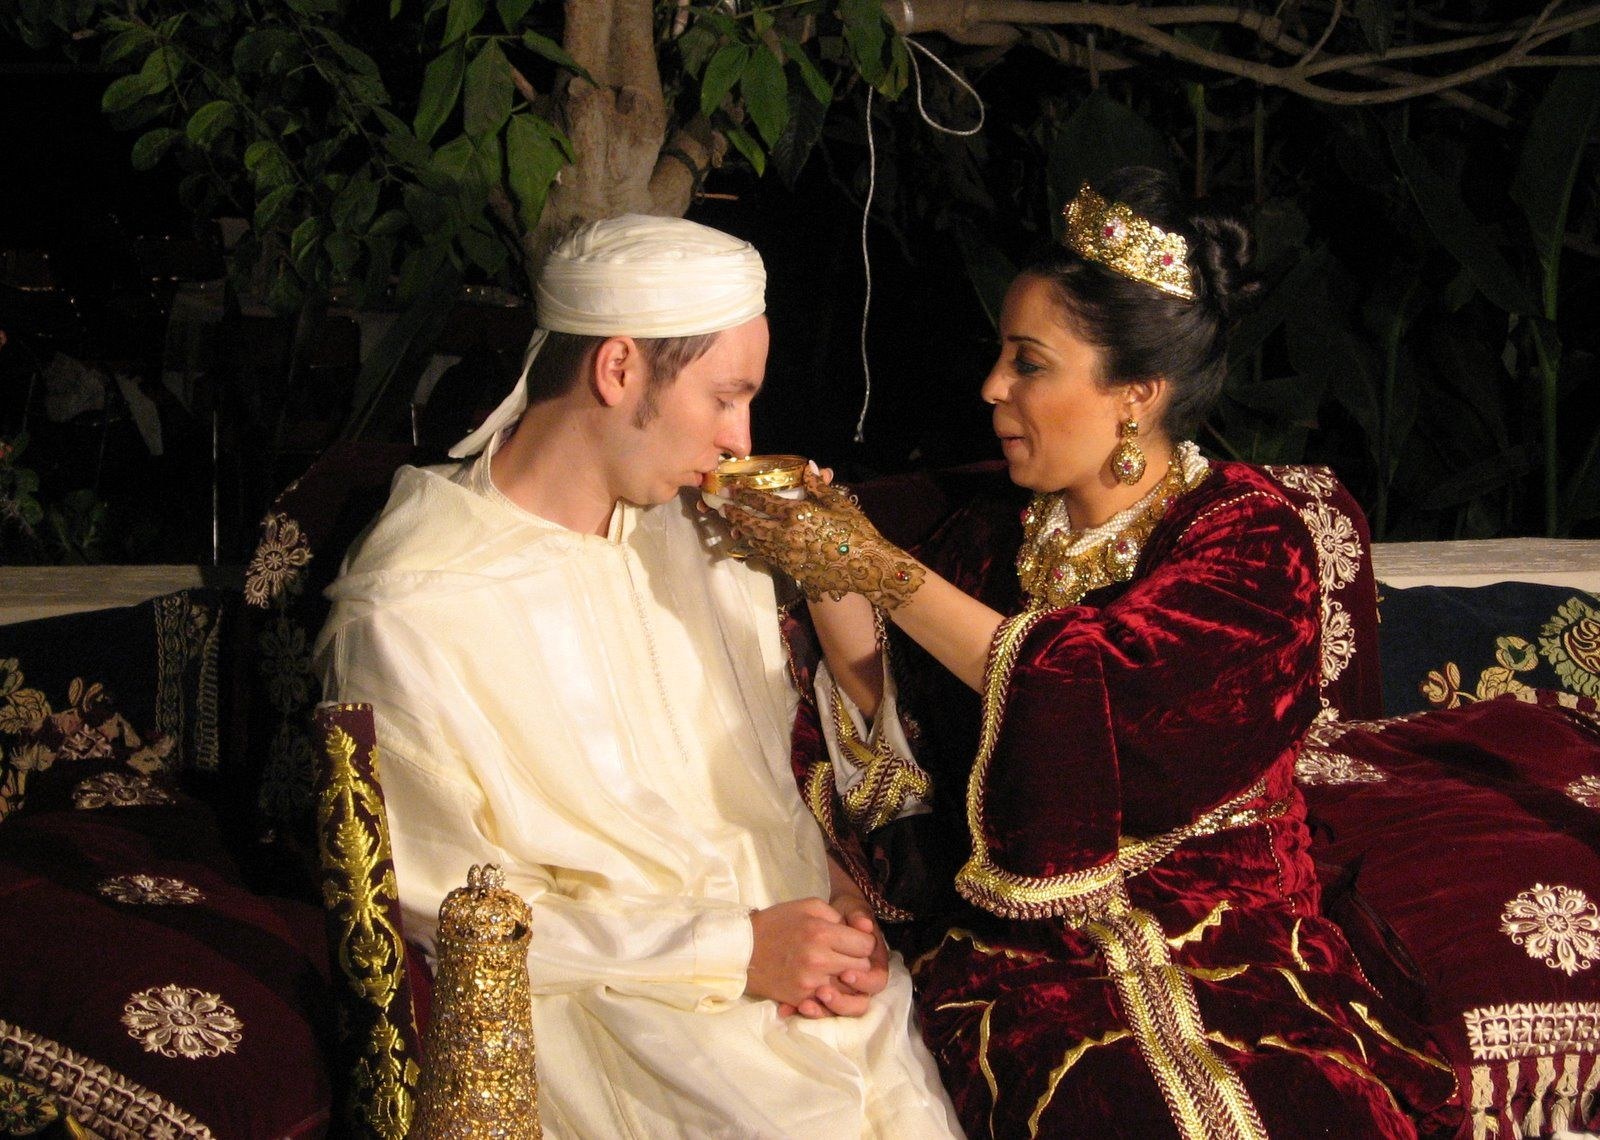 Arab Marriage Culture And Traditions Of South